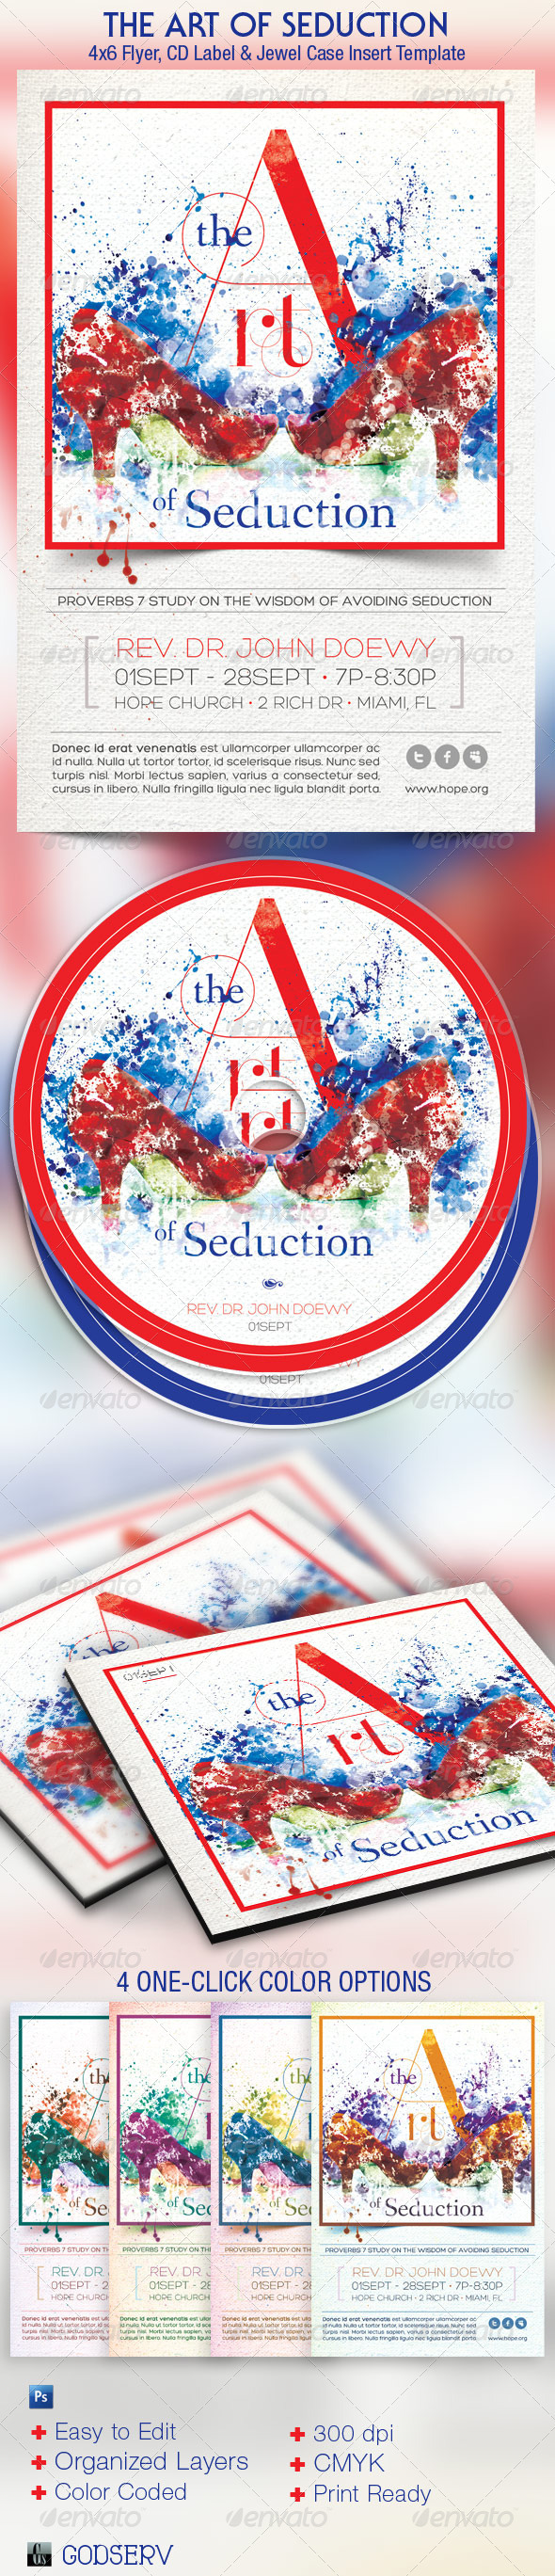 The Art of Seduction Church Flyer and CD Template - Church Flyers